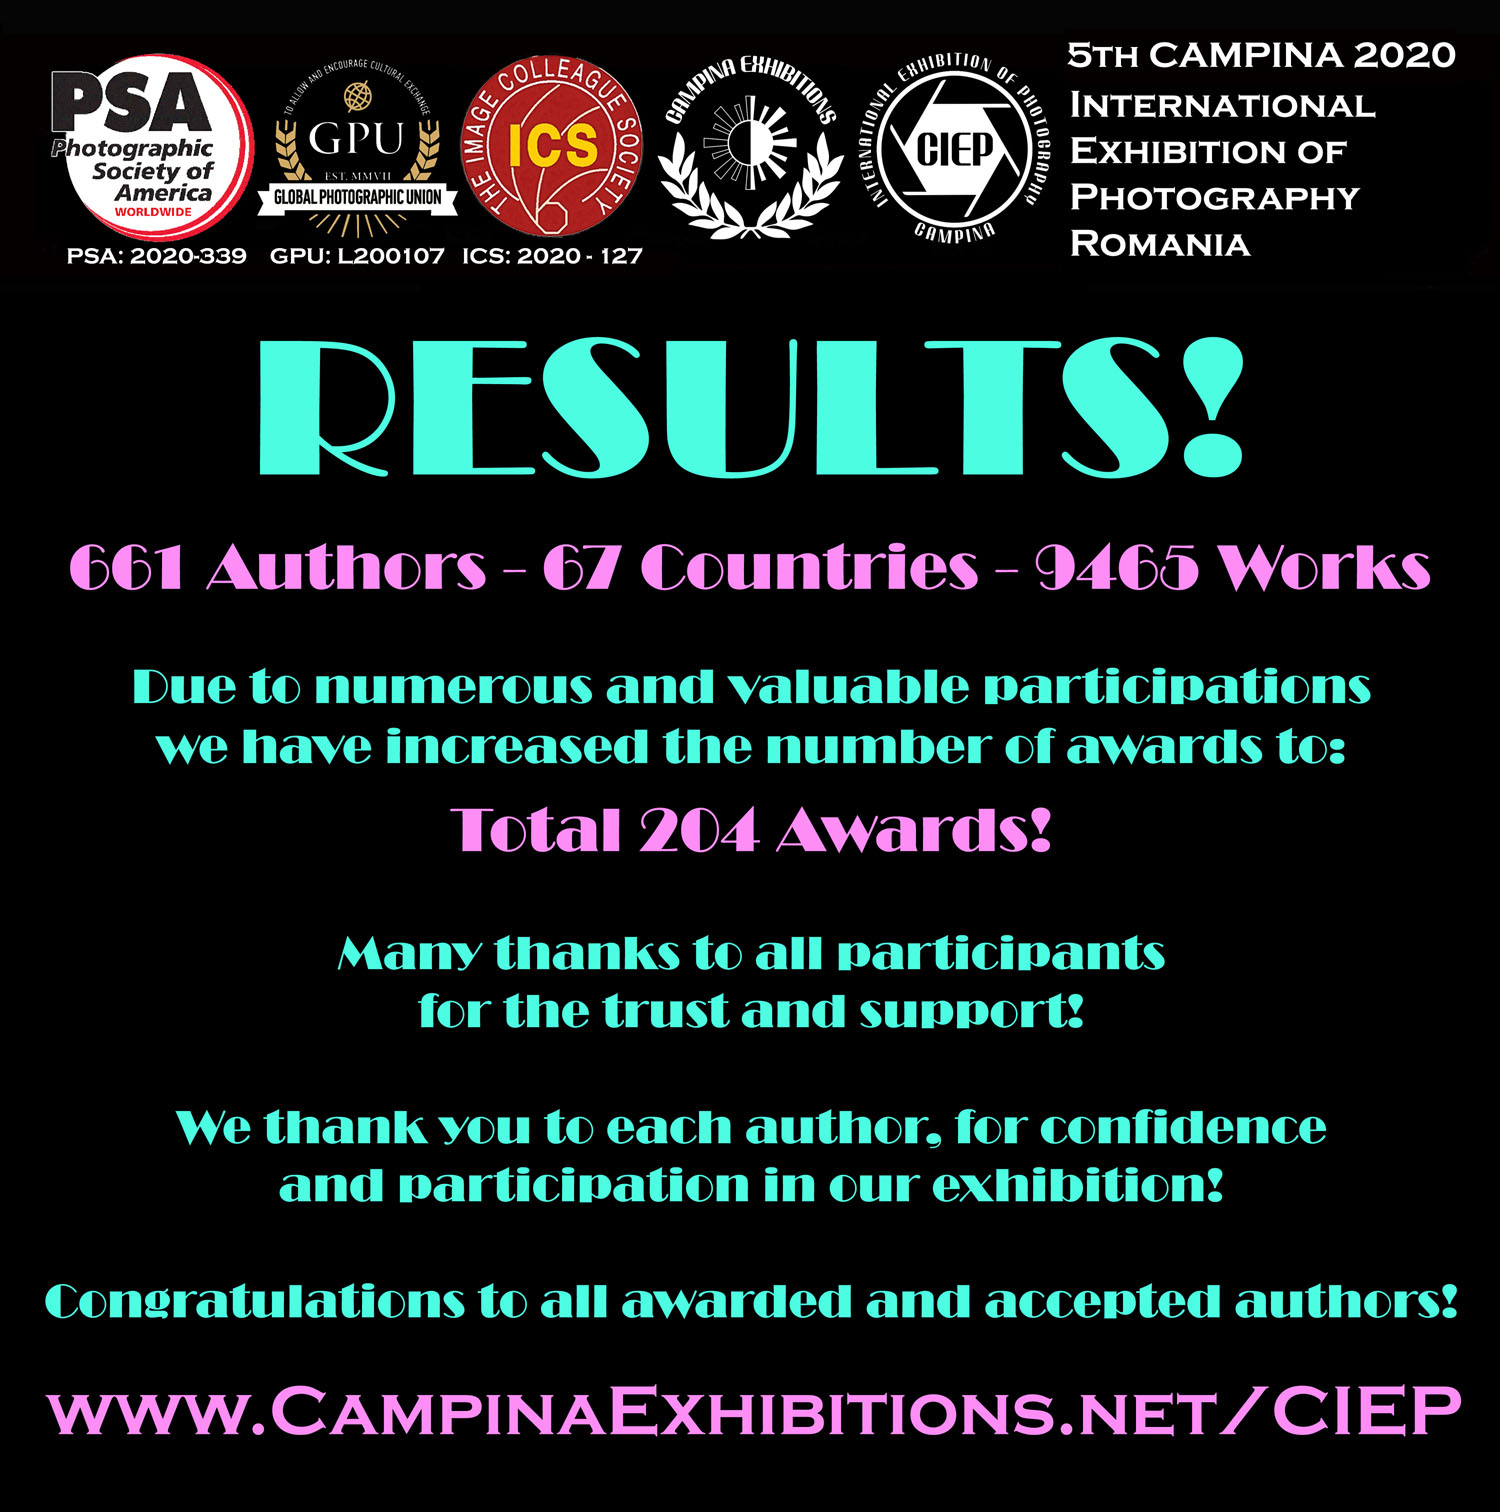 RESULTS - 5th CAMPINA 2020! Published earlier, as we always did!